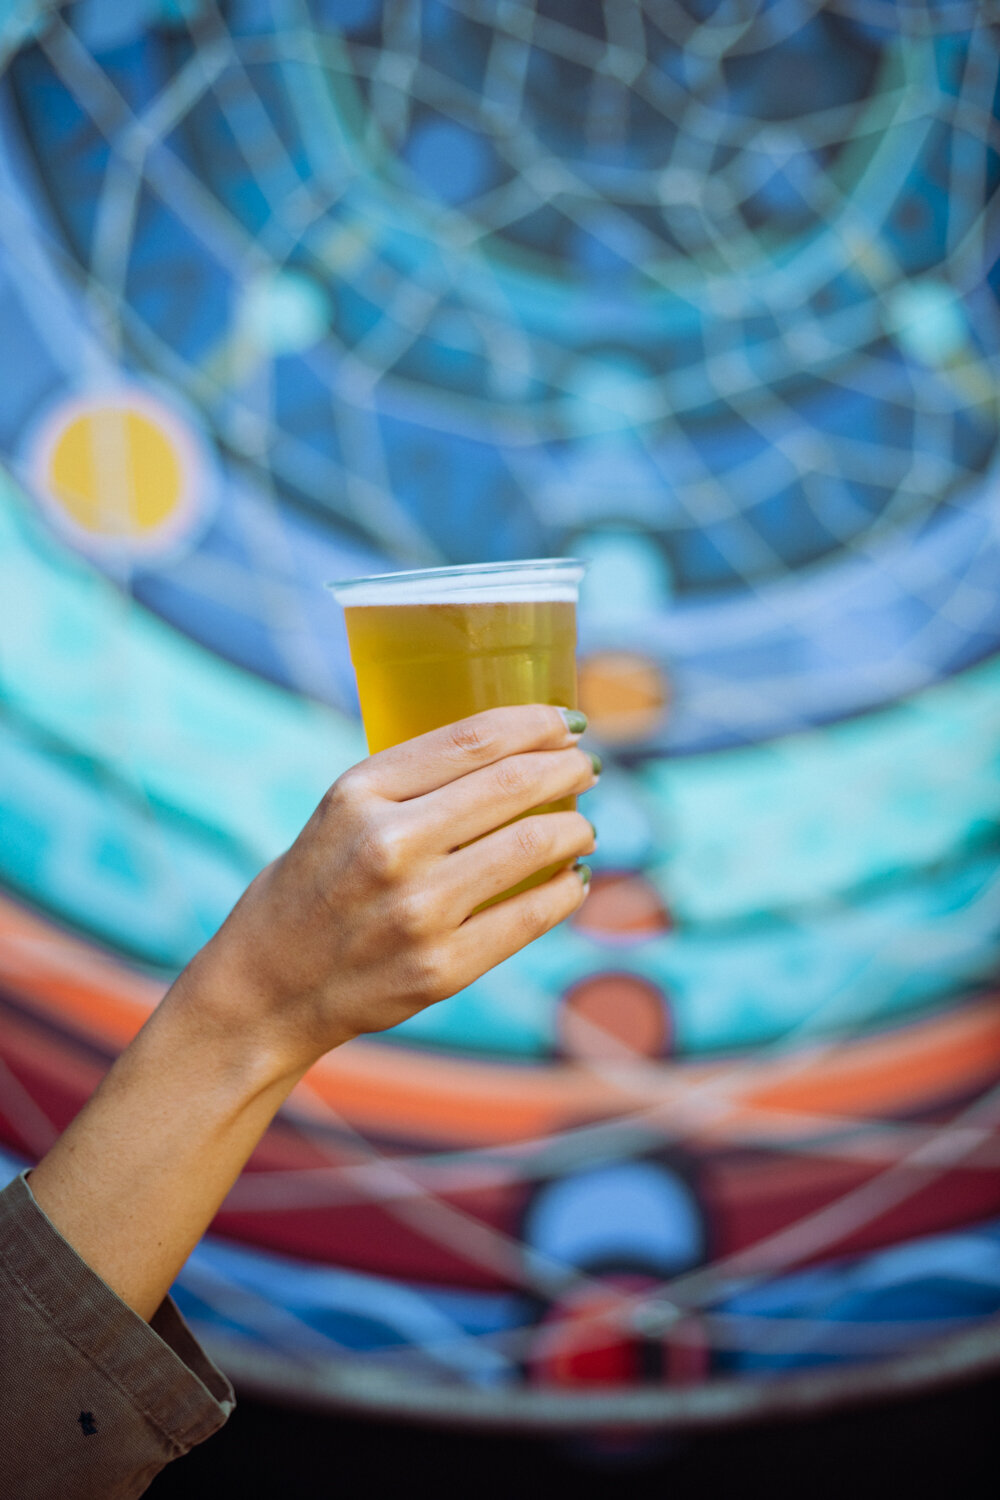 Rachel Off Duty: A Hand Holding a Light Beer in a Plastic Cup in front of a Blue Mural